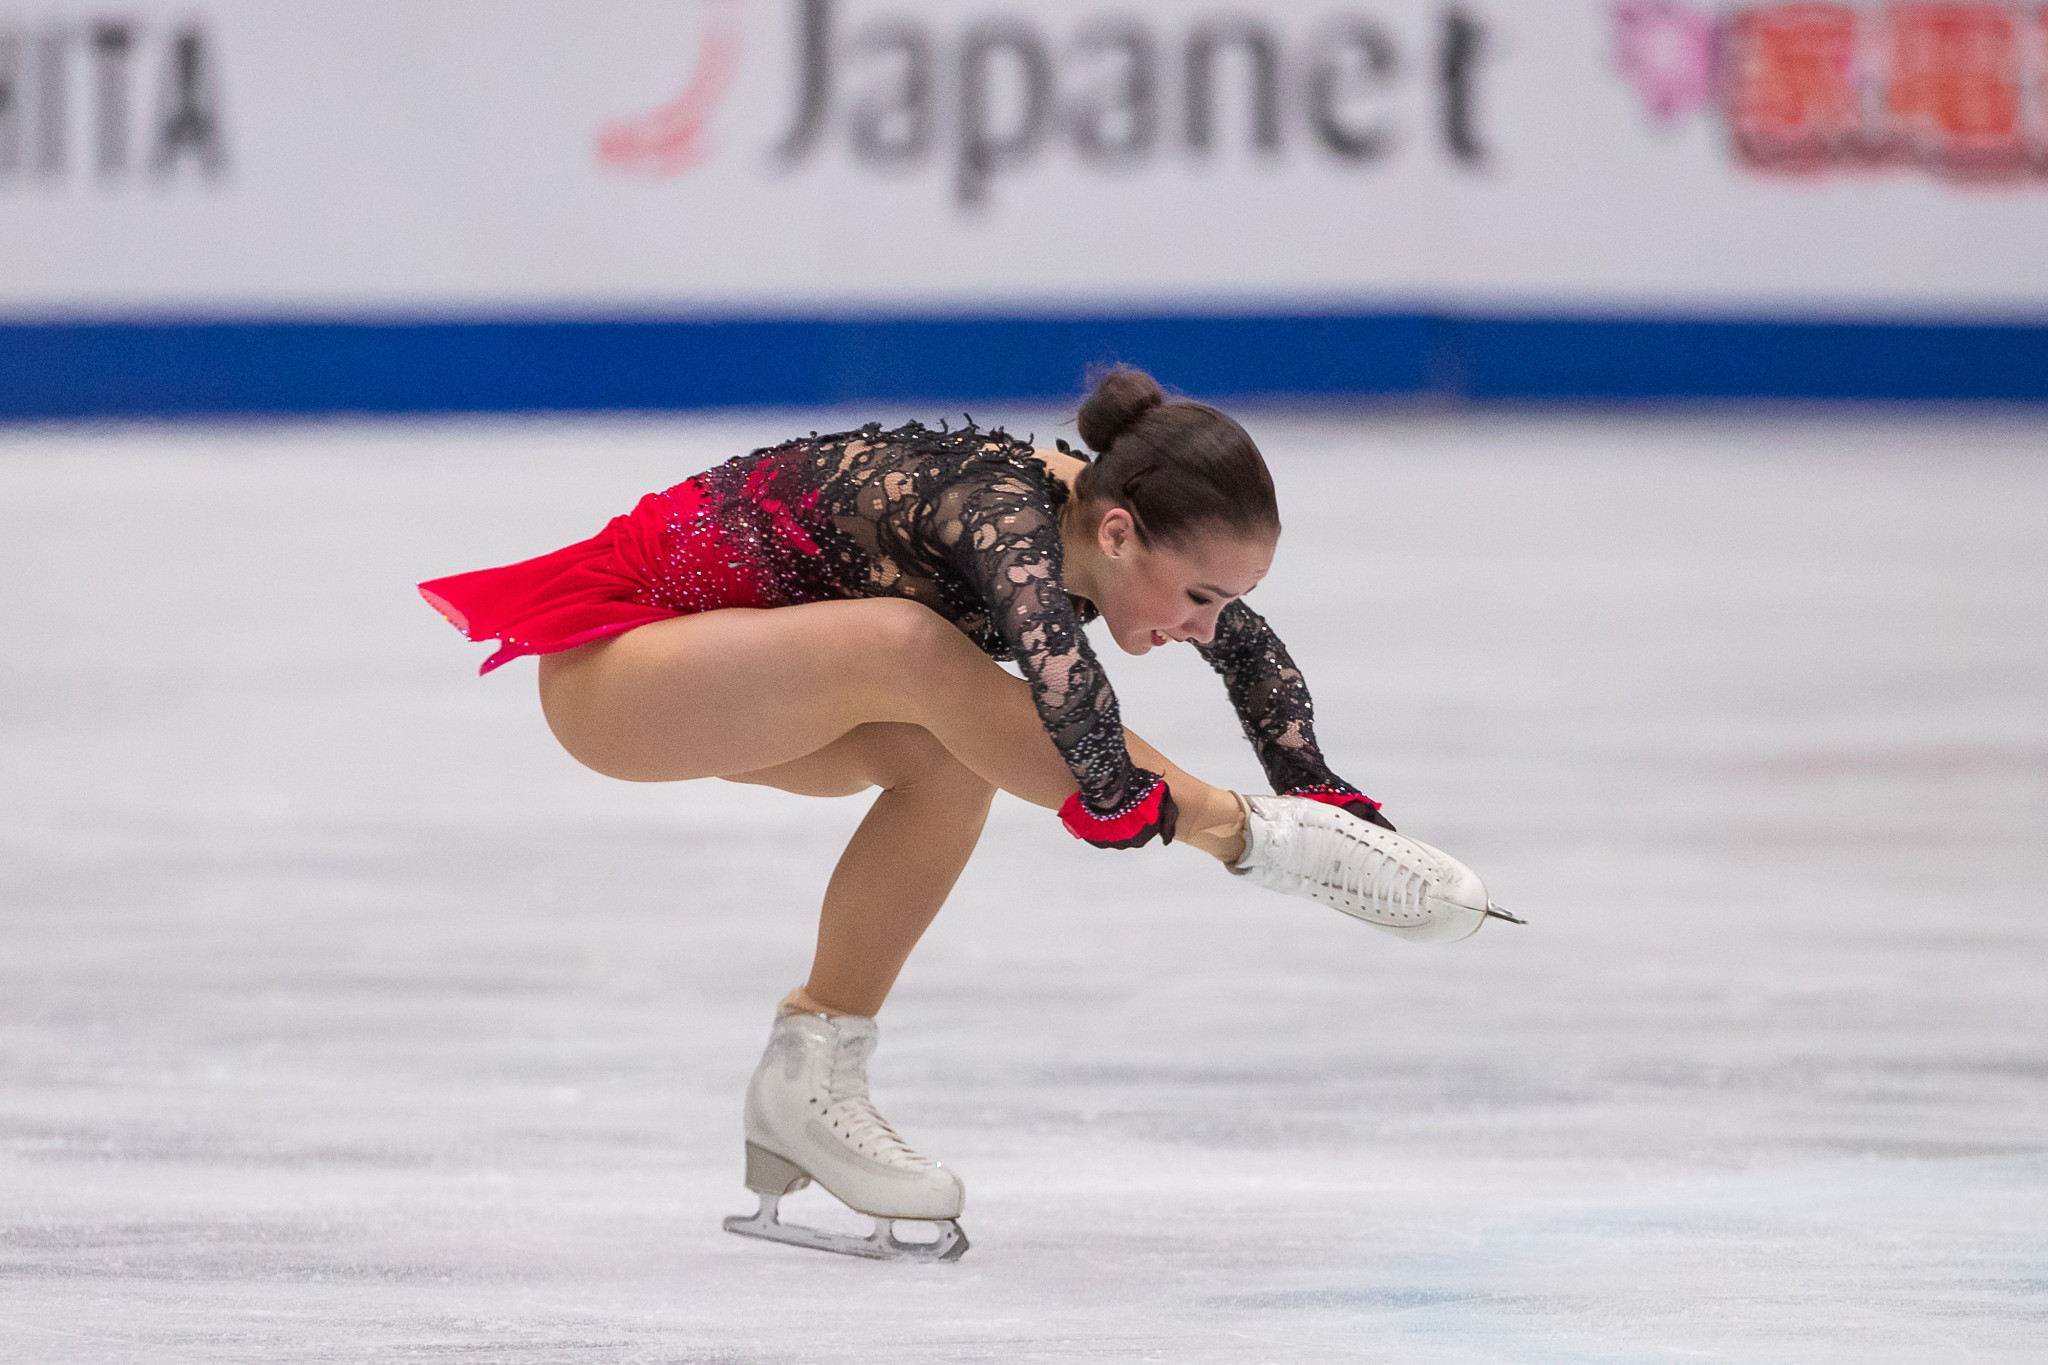 Olympic champion Zagitova to begin Grand Prix of Figure Skating season